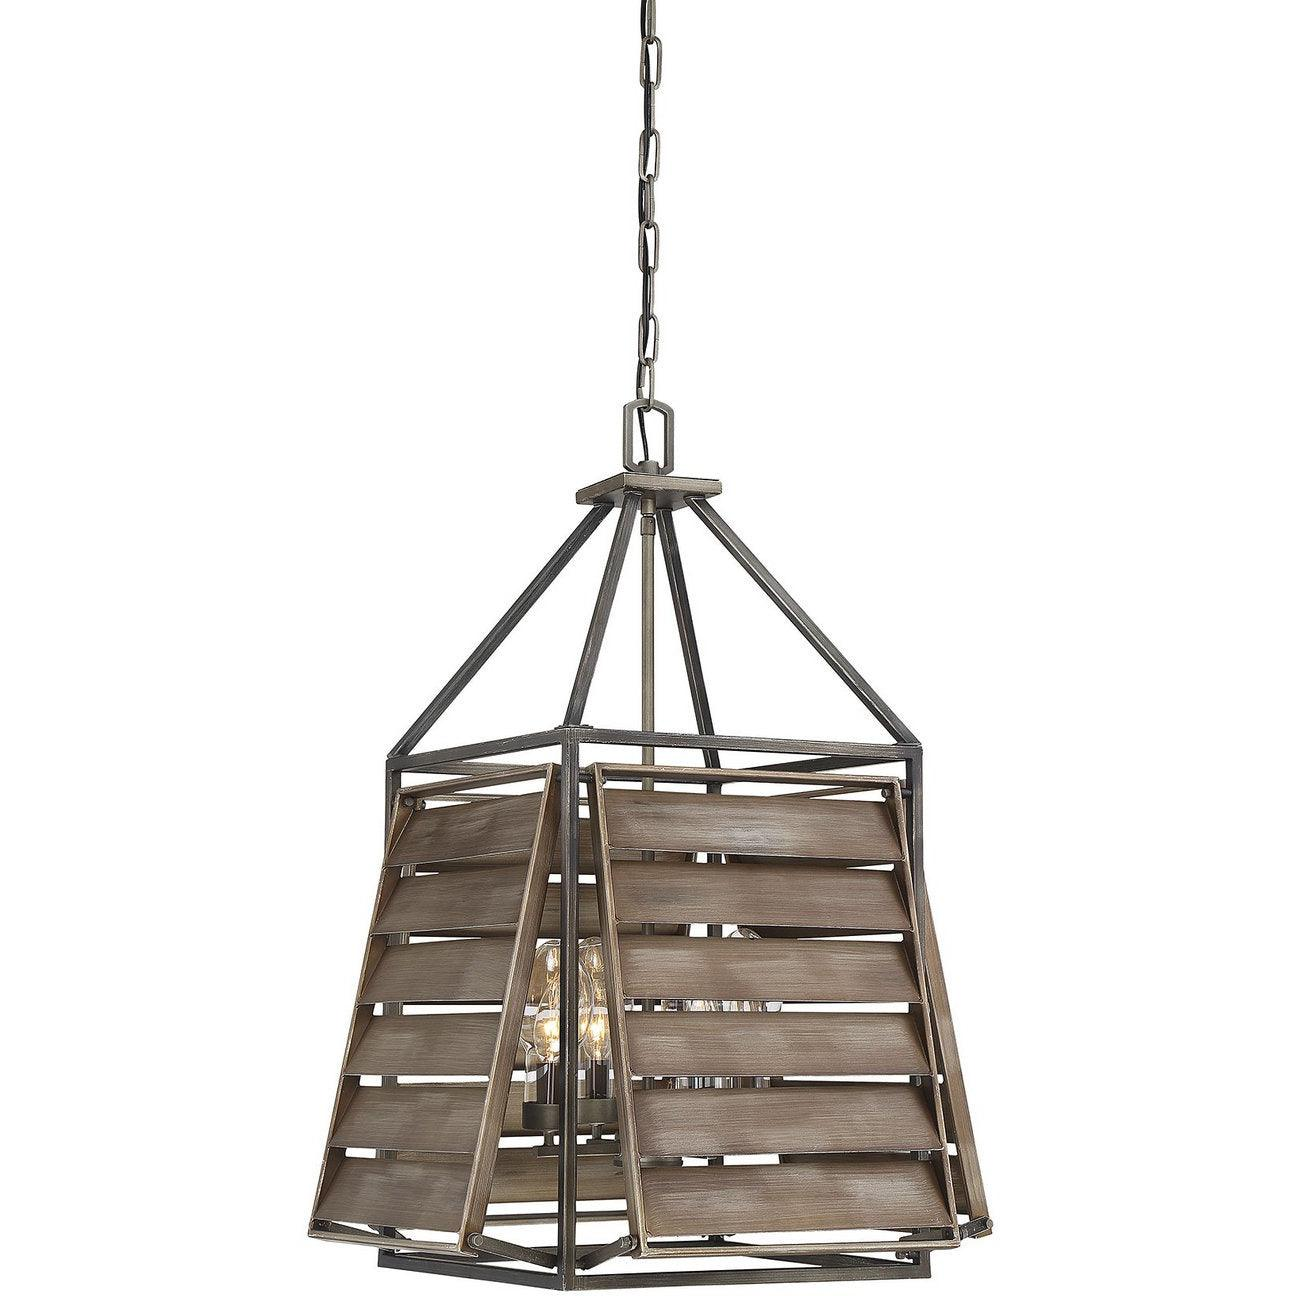 Savoy House - 7-9341-4-162 - Four Light Outdoor Pendant - Hartberg - Aged Driftwood